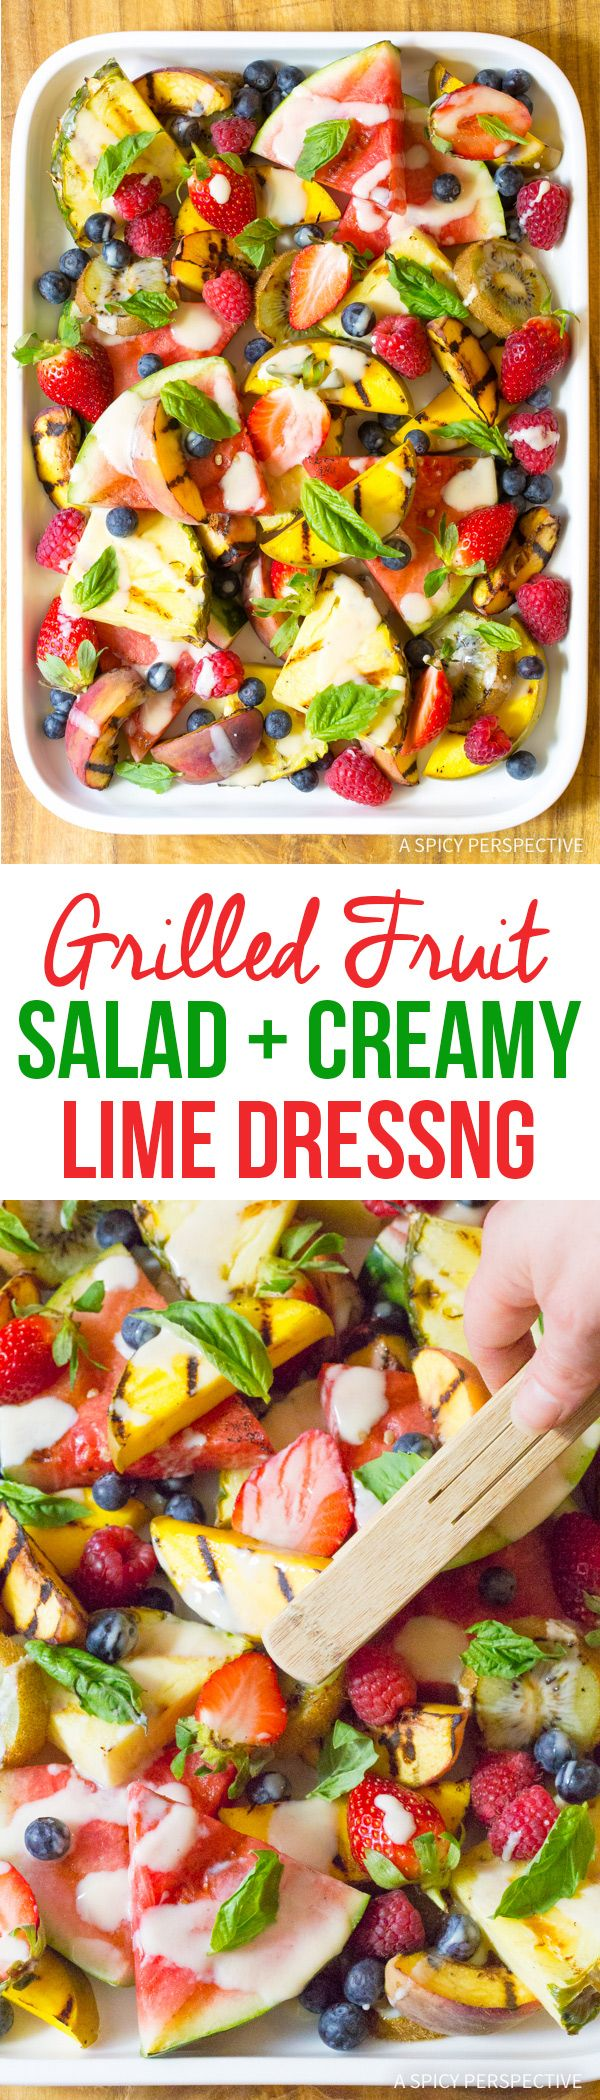 Tangy Grilled Fruit Salad with Creamy Lime Dressing Recipe